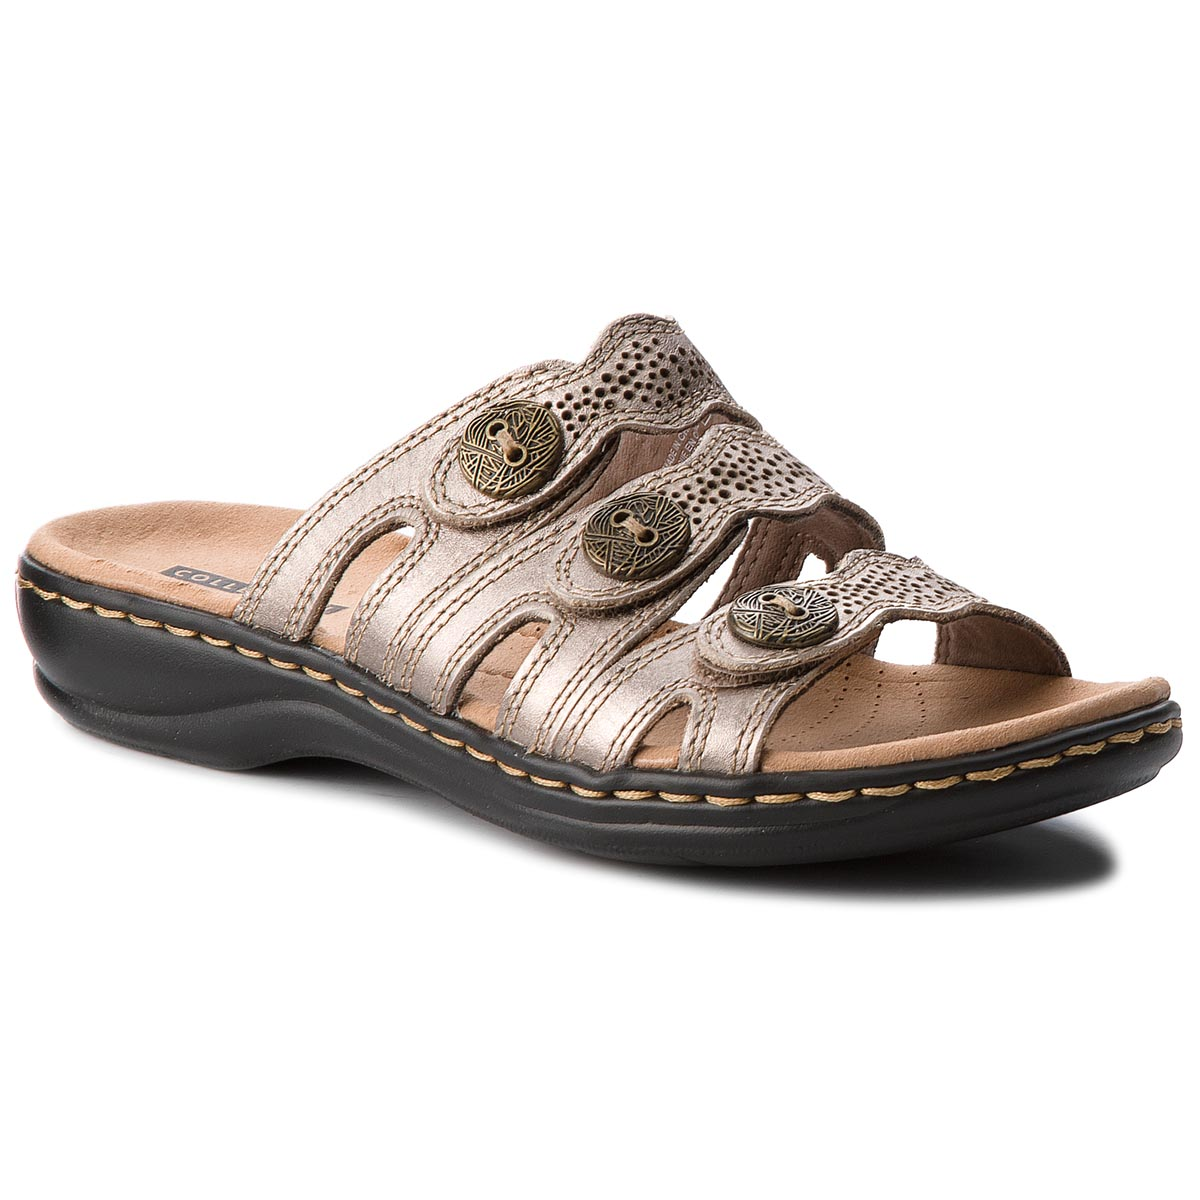 Klapki CLARKS - Leisa Grace 261341124 Pewter Metallic